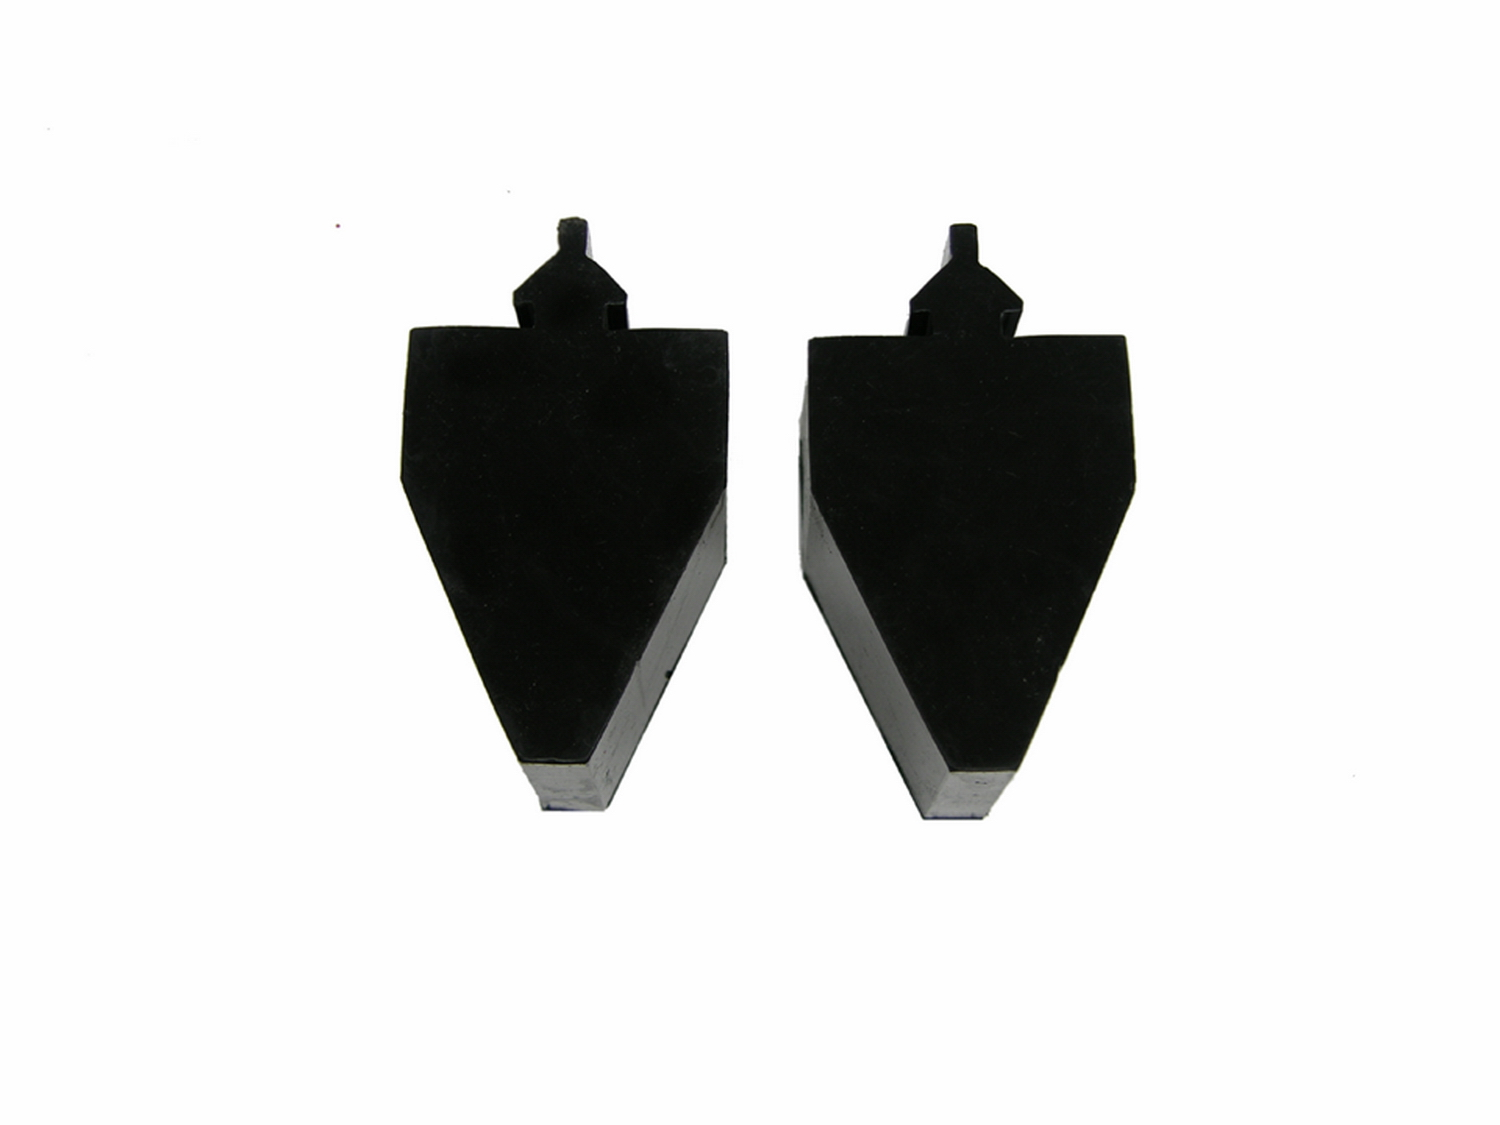 All Vehicles (Universal) Prothane Pull Through Style Bump Stop - Tall Pyramid Model - Black